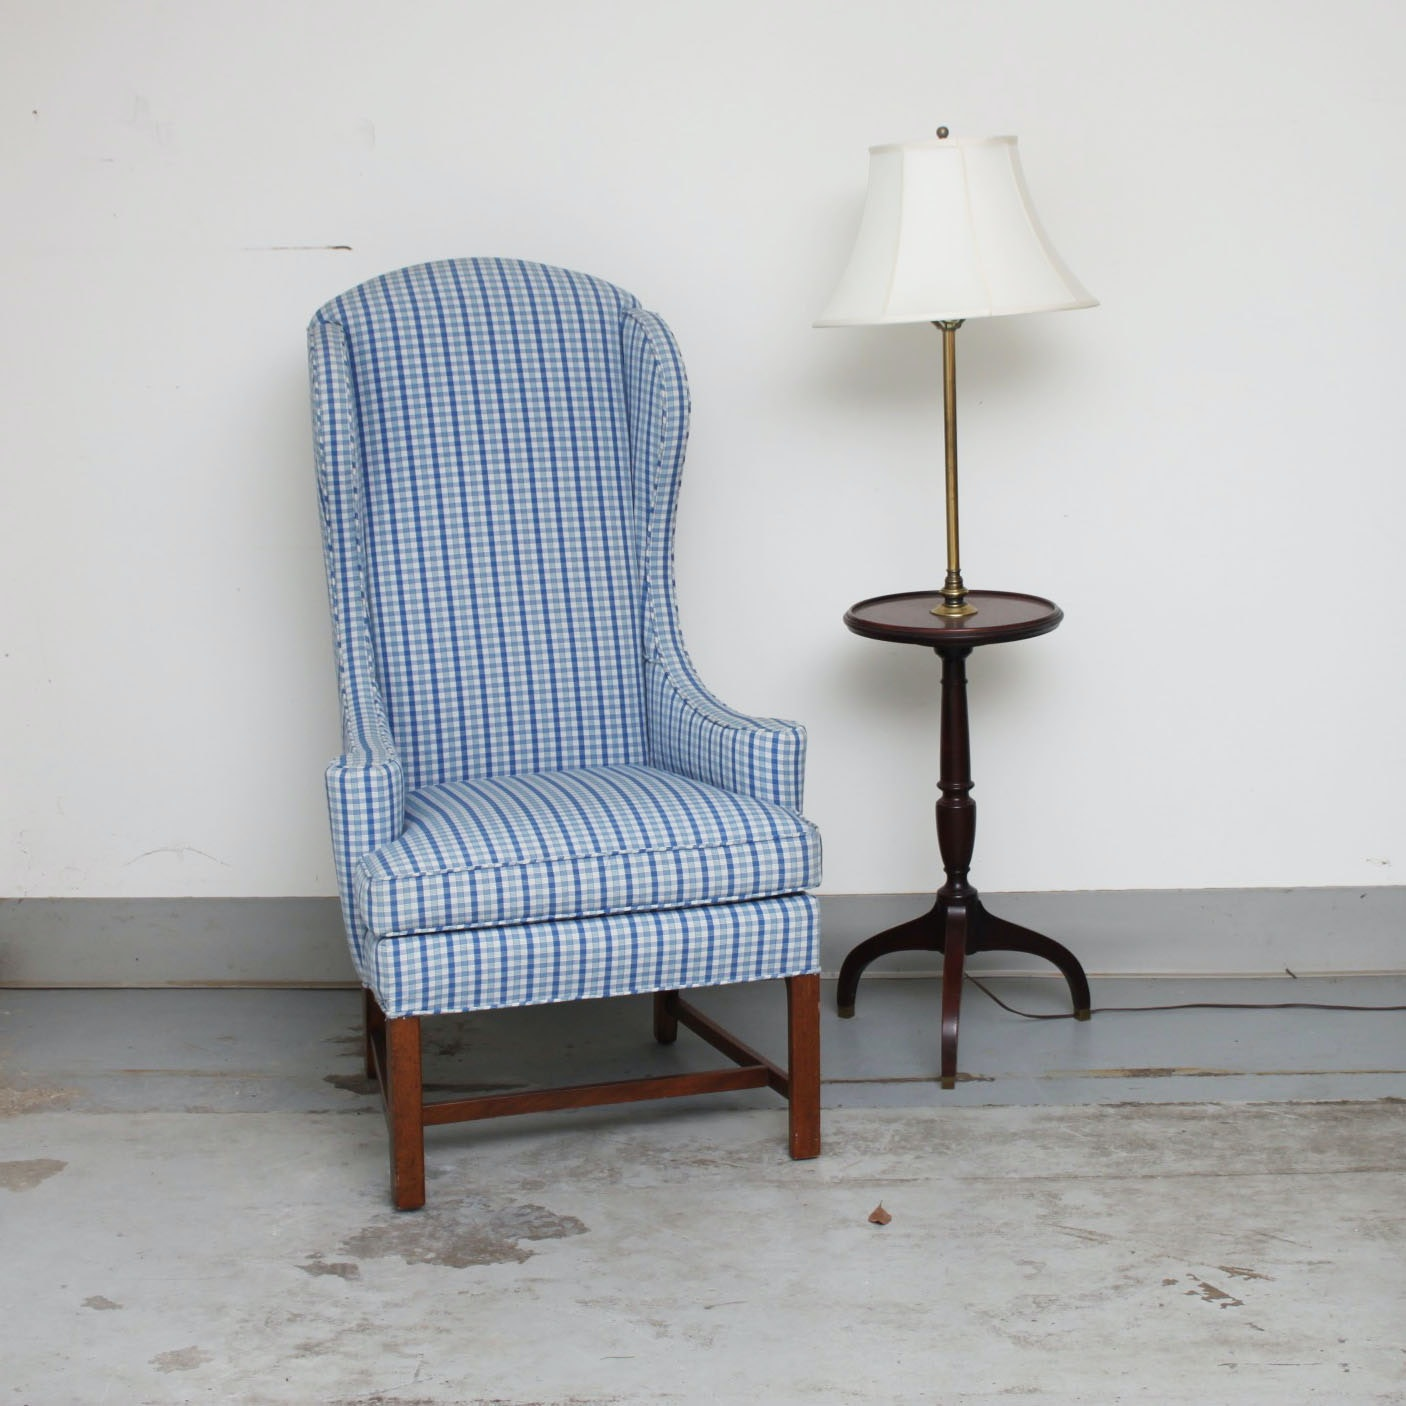 Wingback Chair and Tray Table Floor Lamp